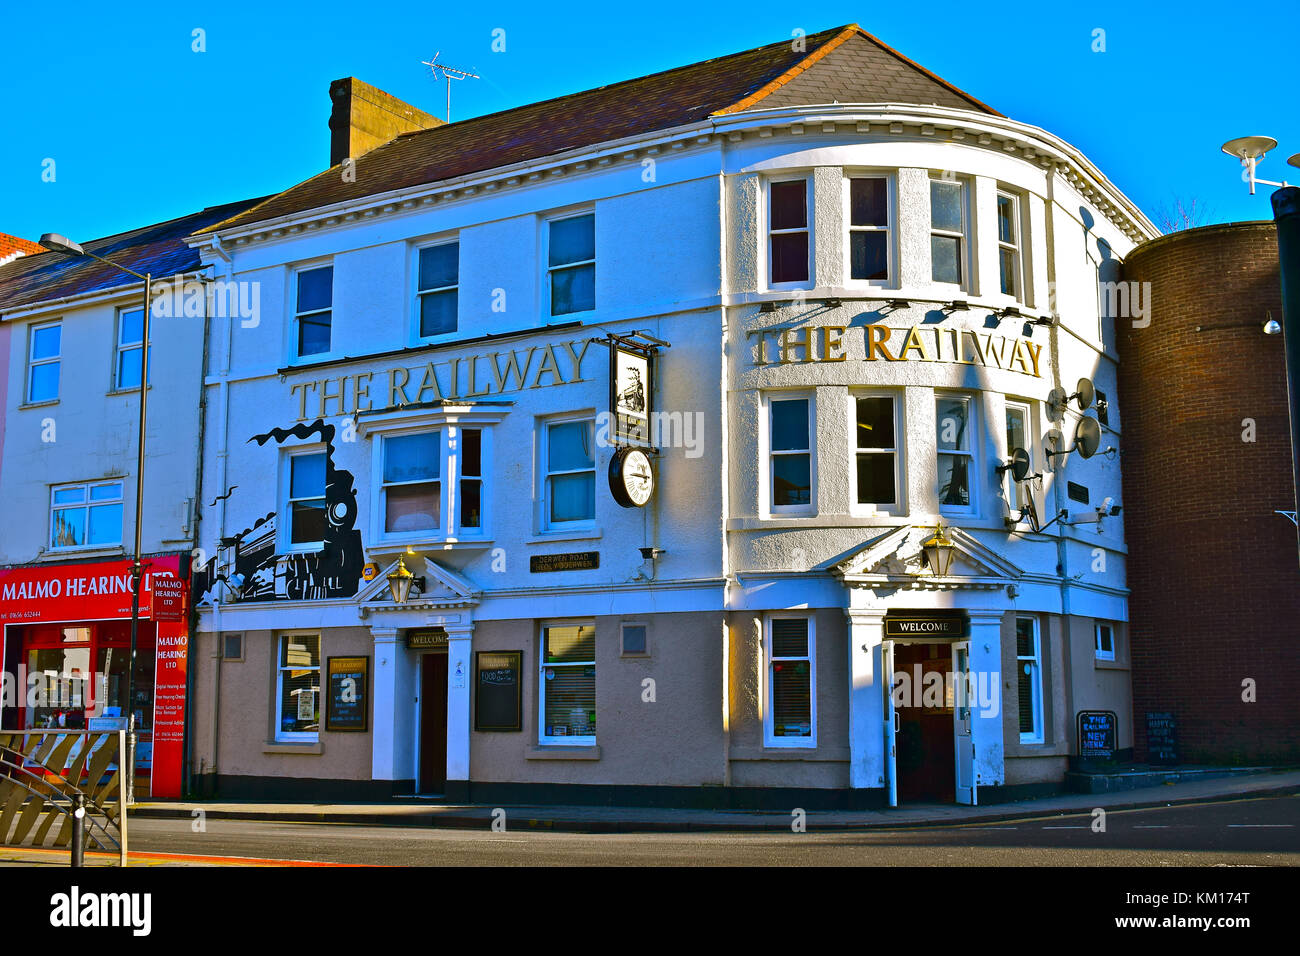 The Railway, Inn/Public house close to Bridgend town centre has been established for many years and now attracts - Stock Image